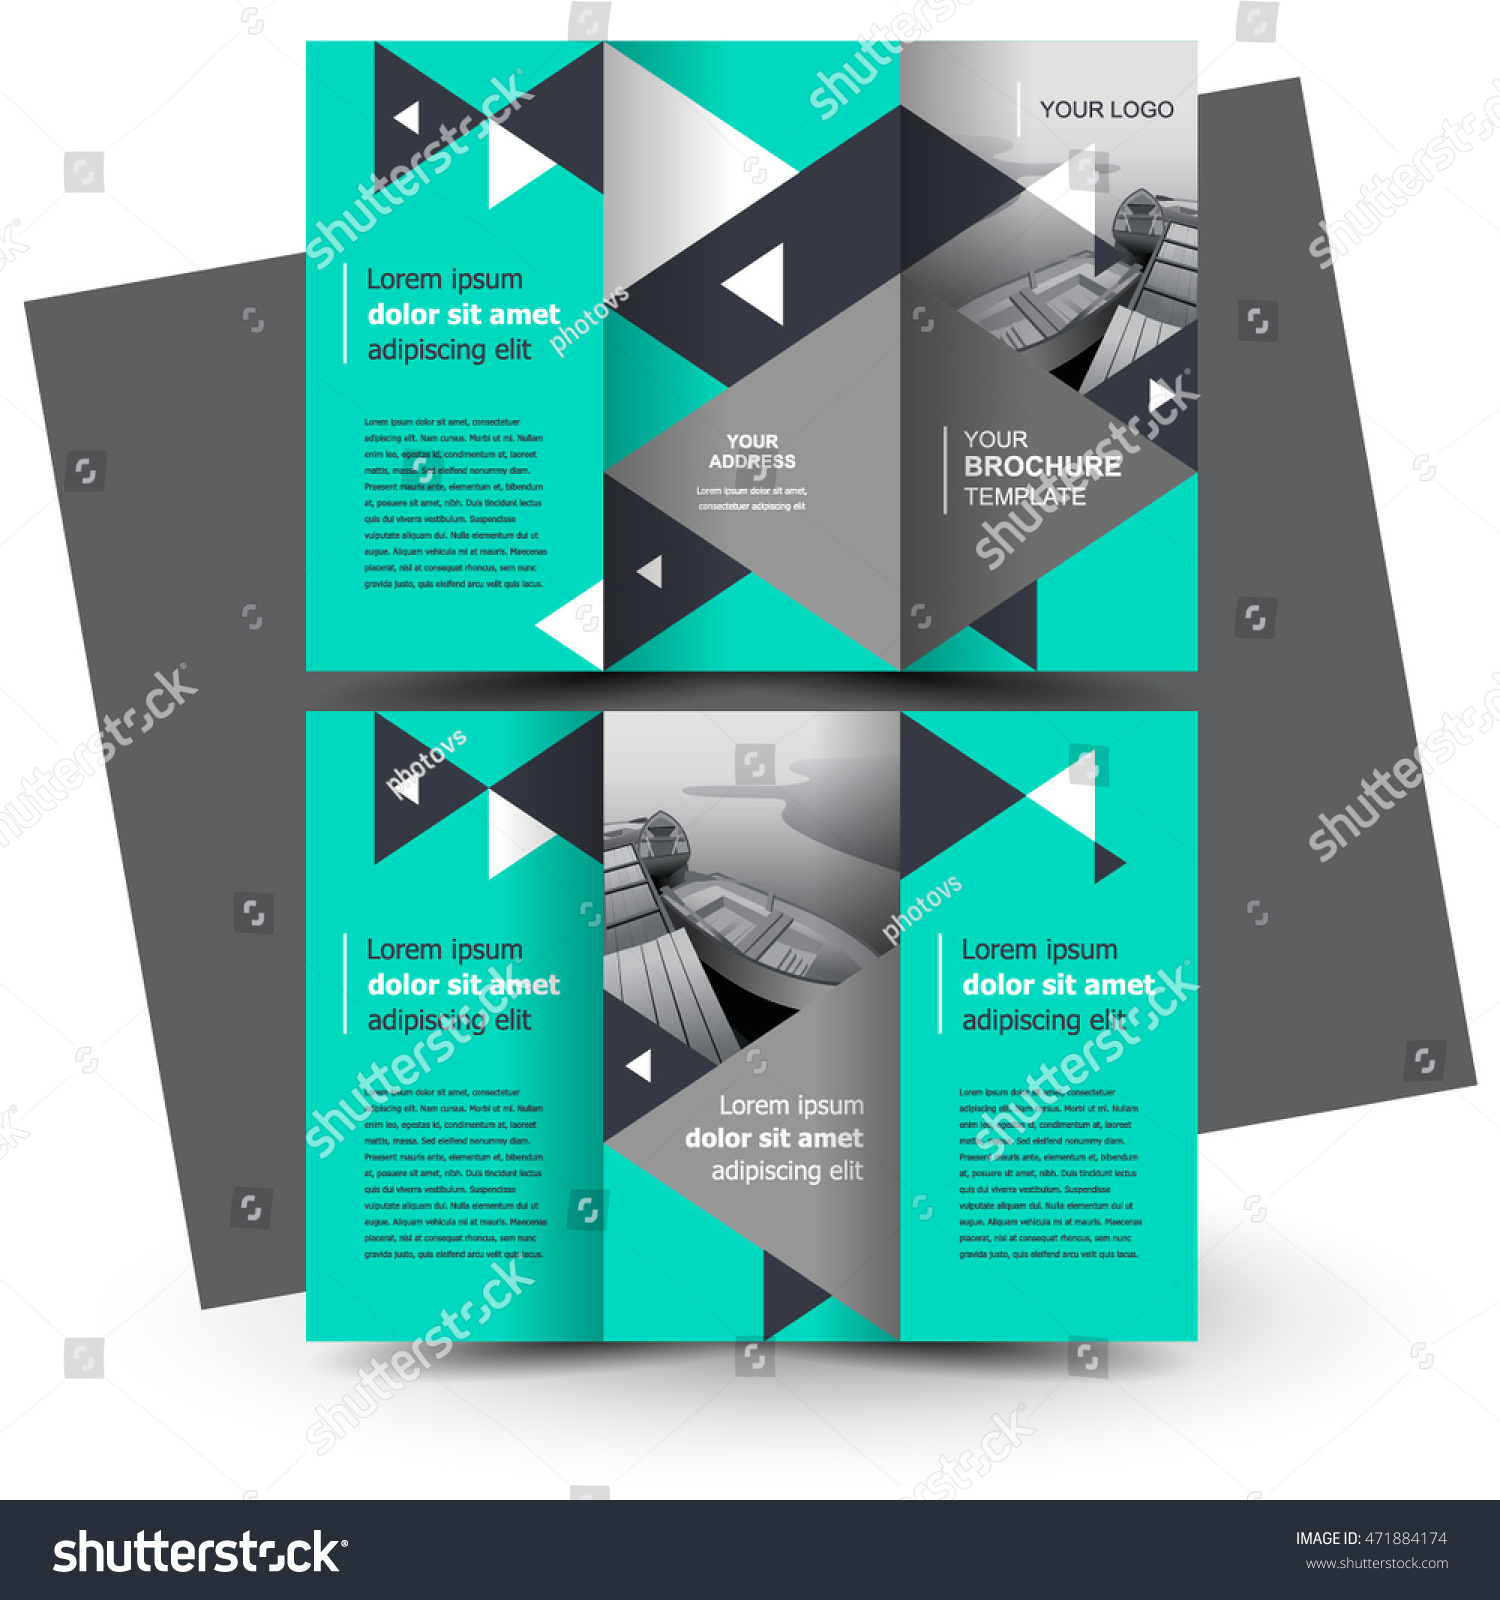 creative brochure design templates - brochure design templates brochure template design vector